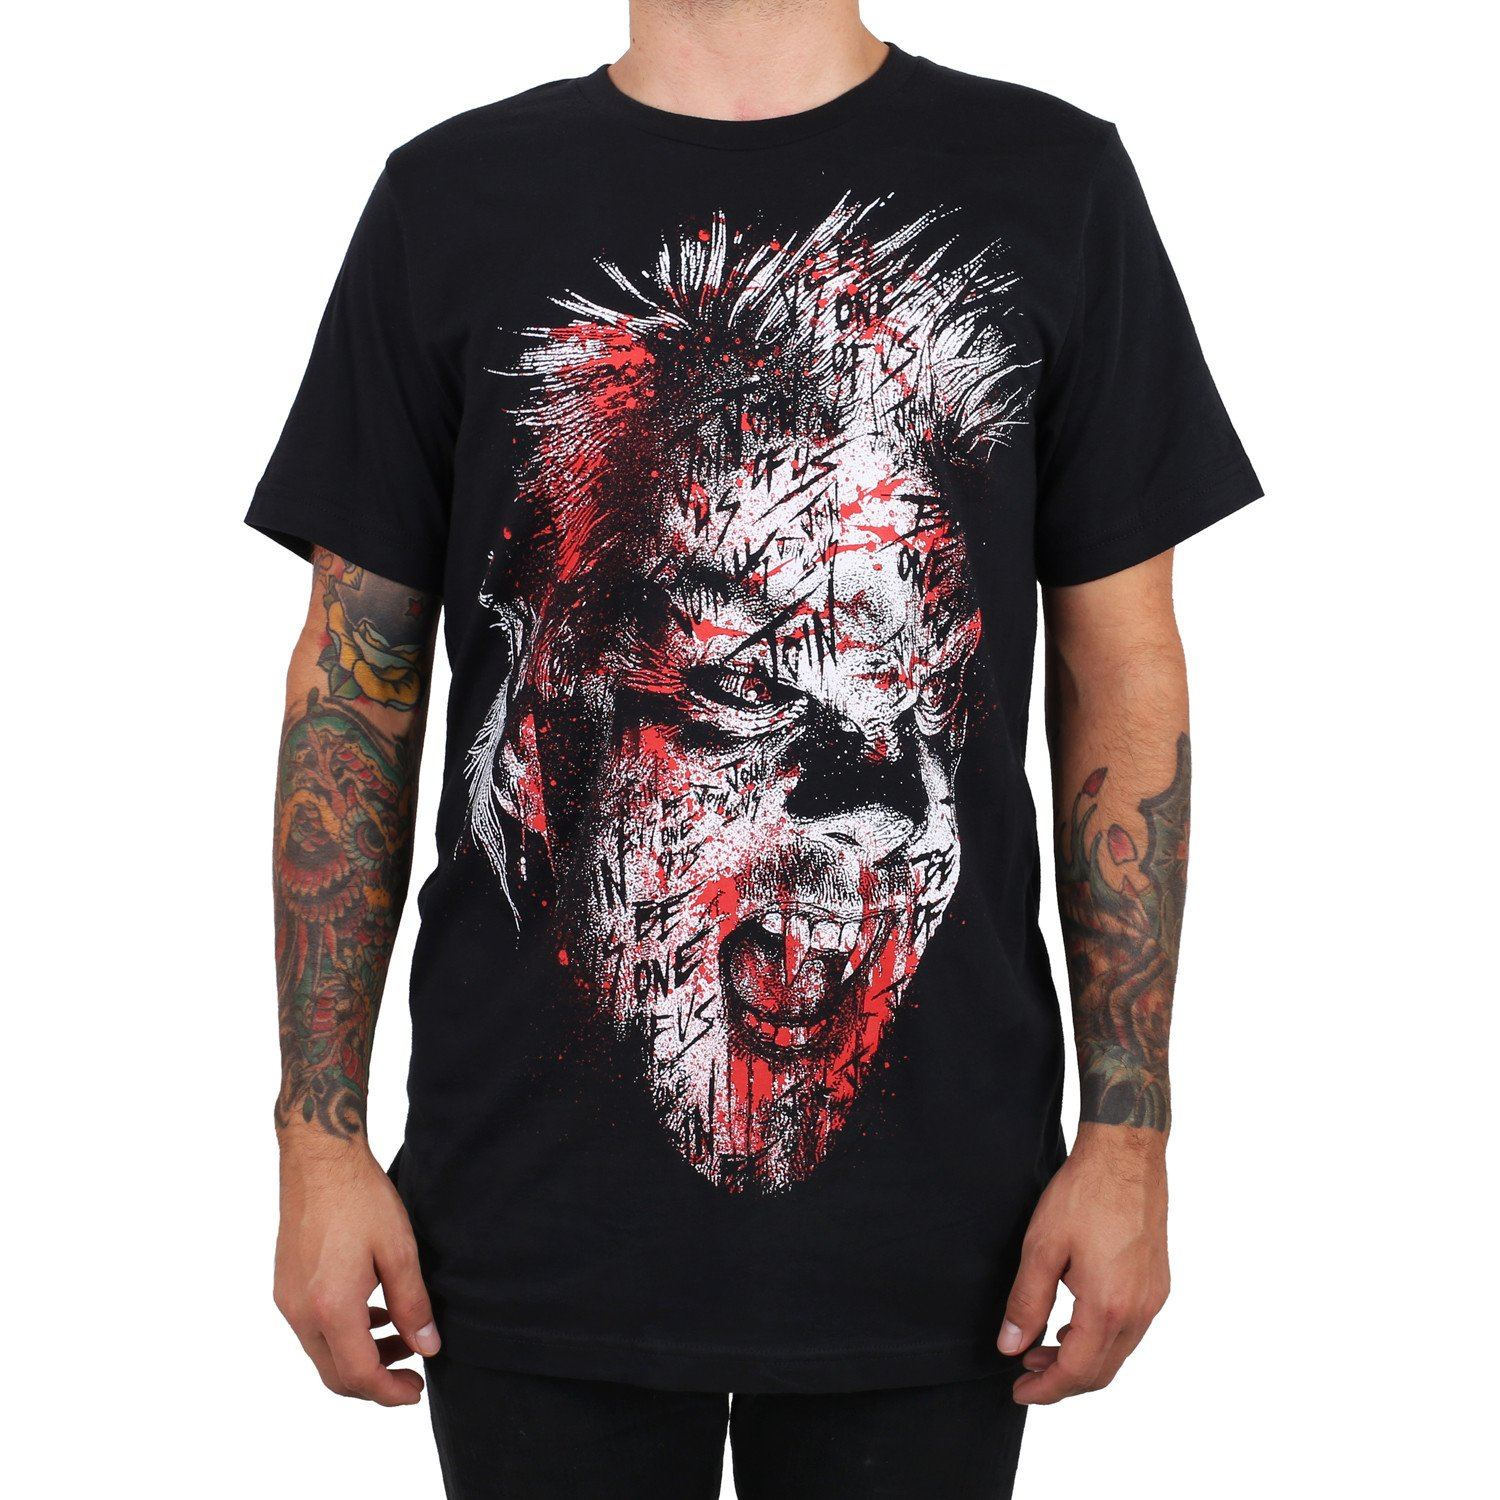 'Lost' T-Shirt